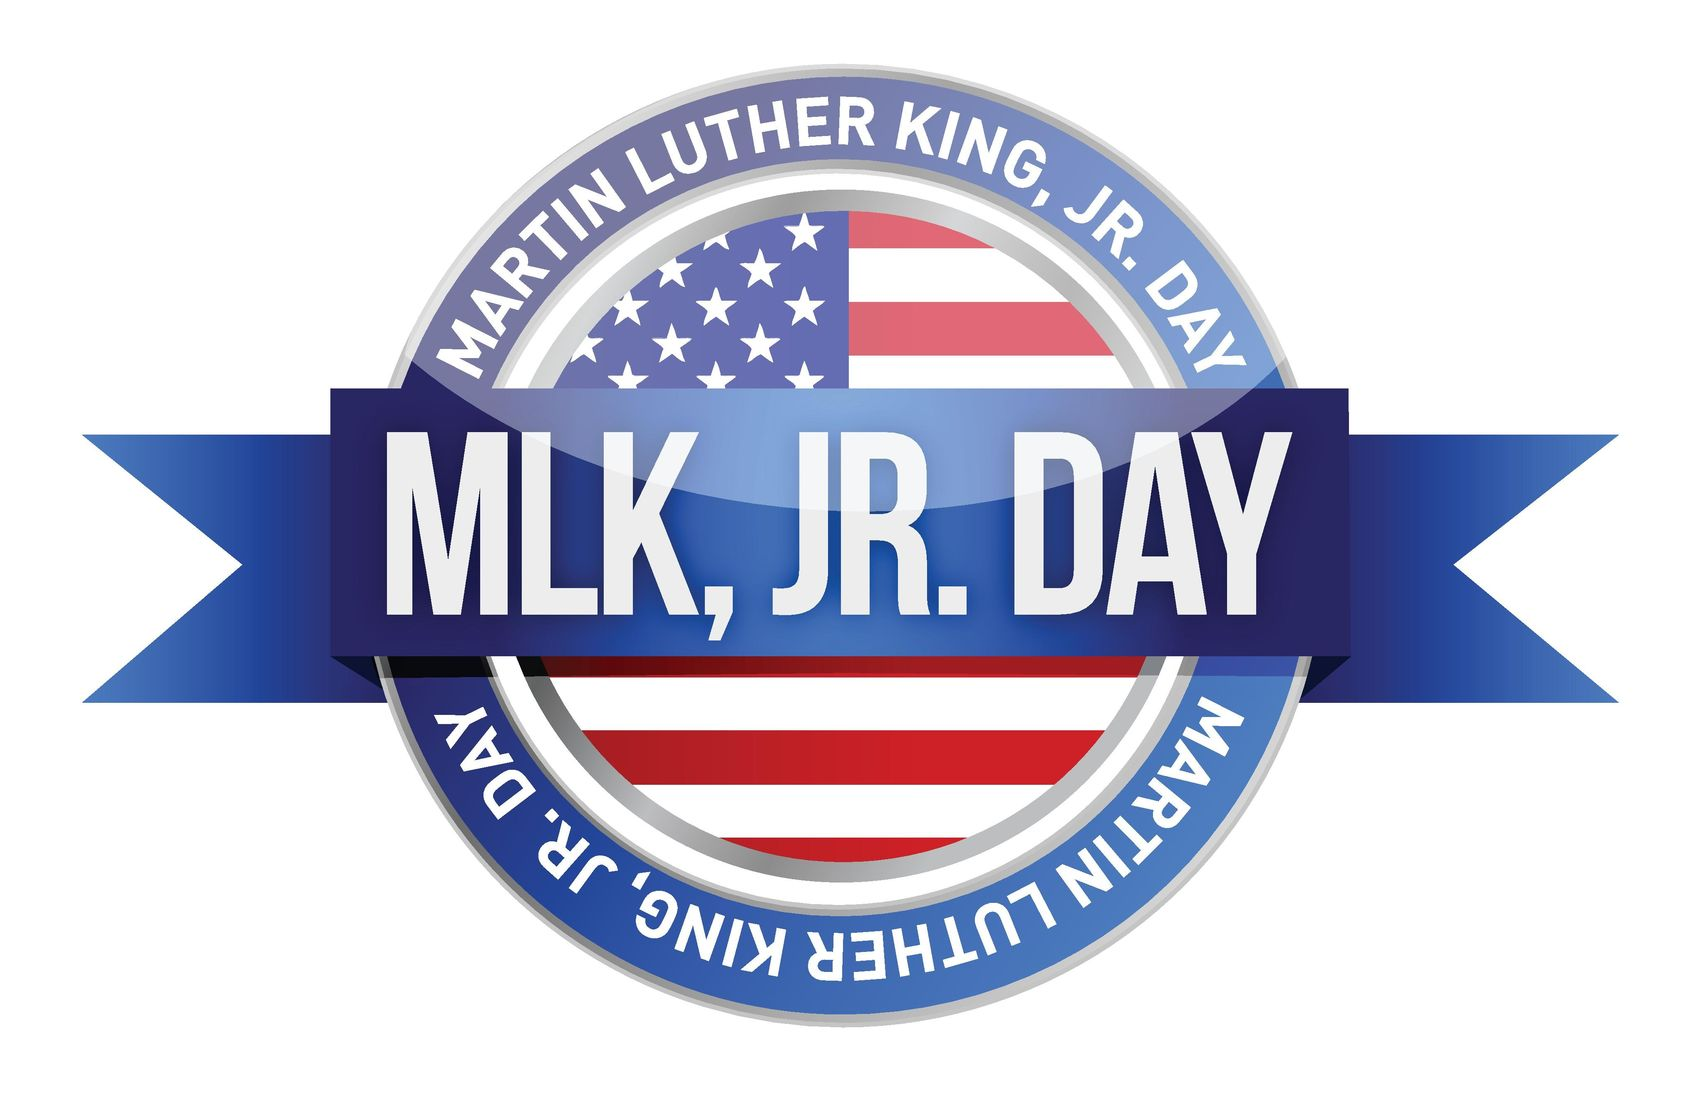 clip art martin luther king jr day - photo #15